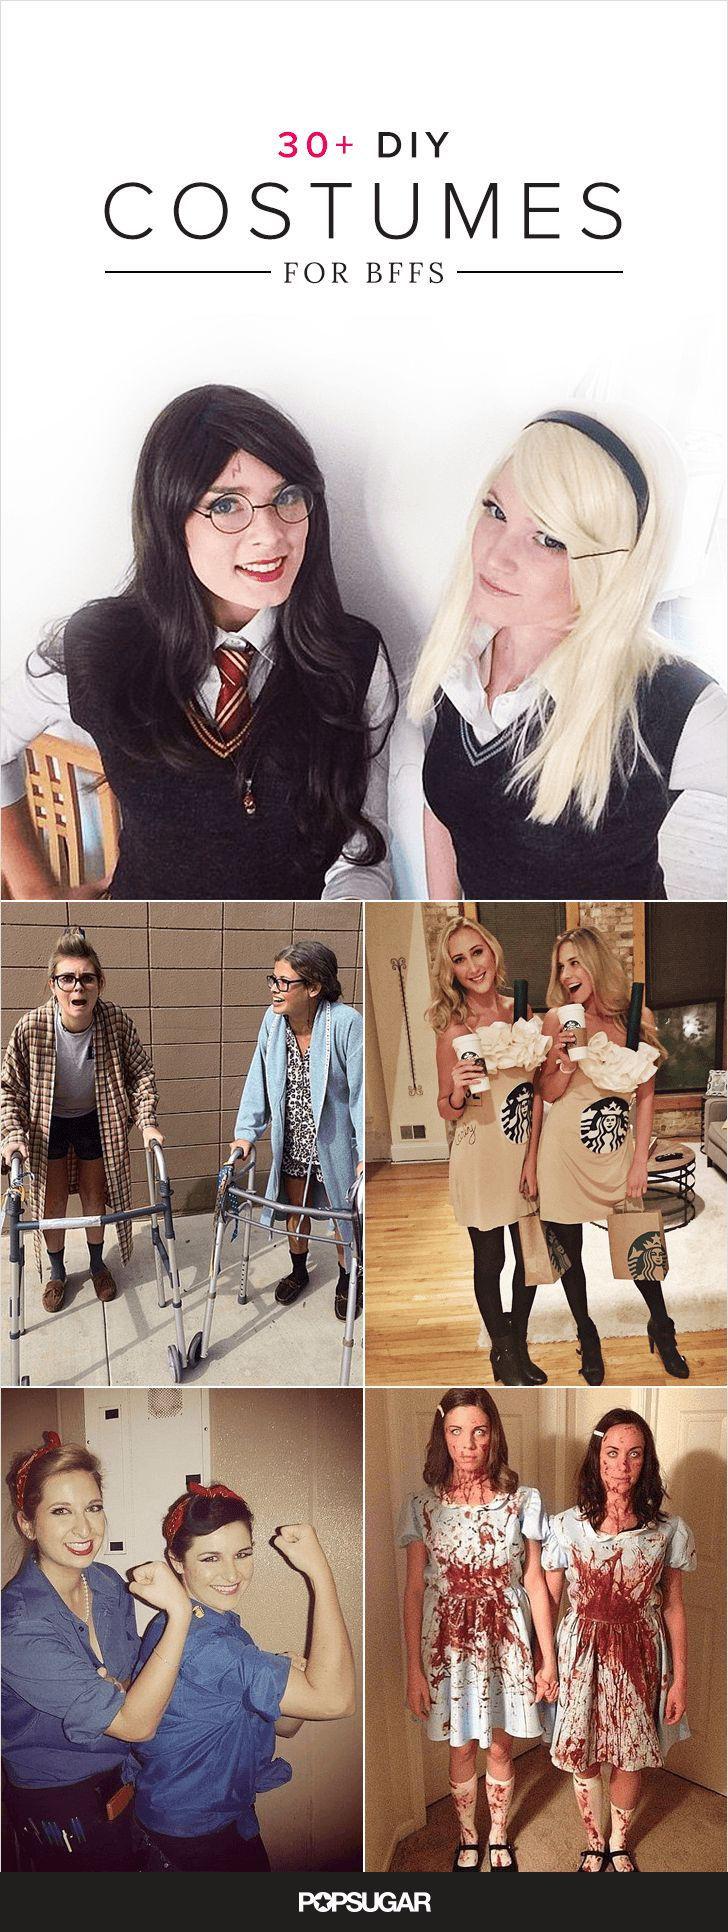 31 Insanely Ingenious DIY Costumes For BFFs